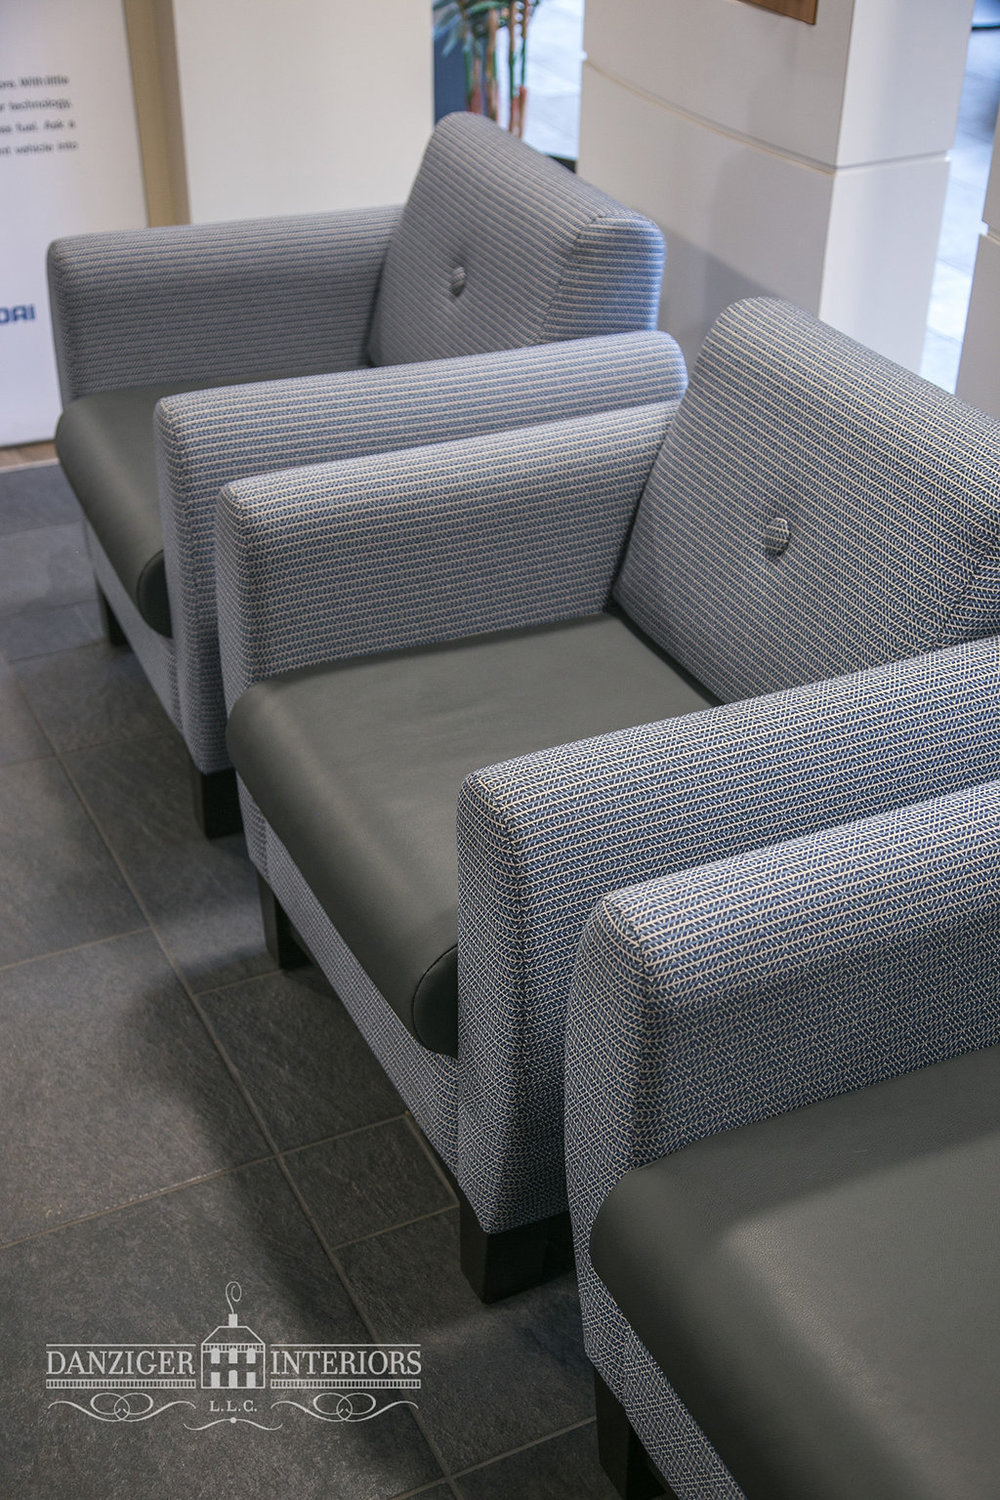 Upholstered chairs in fabric to withstand heavy use